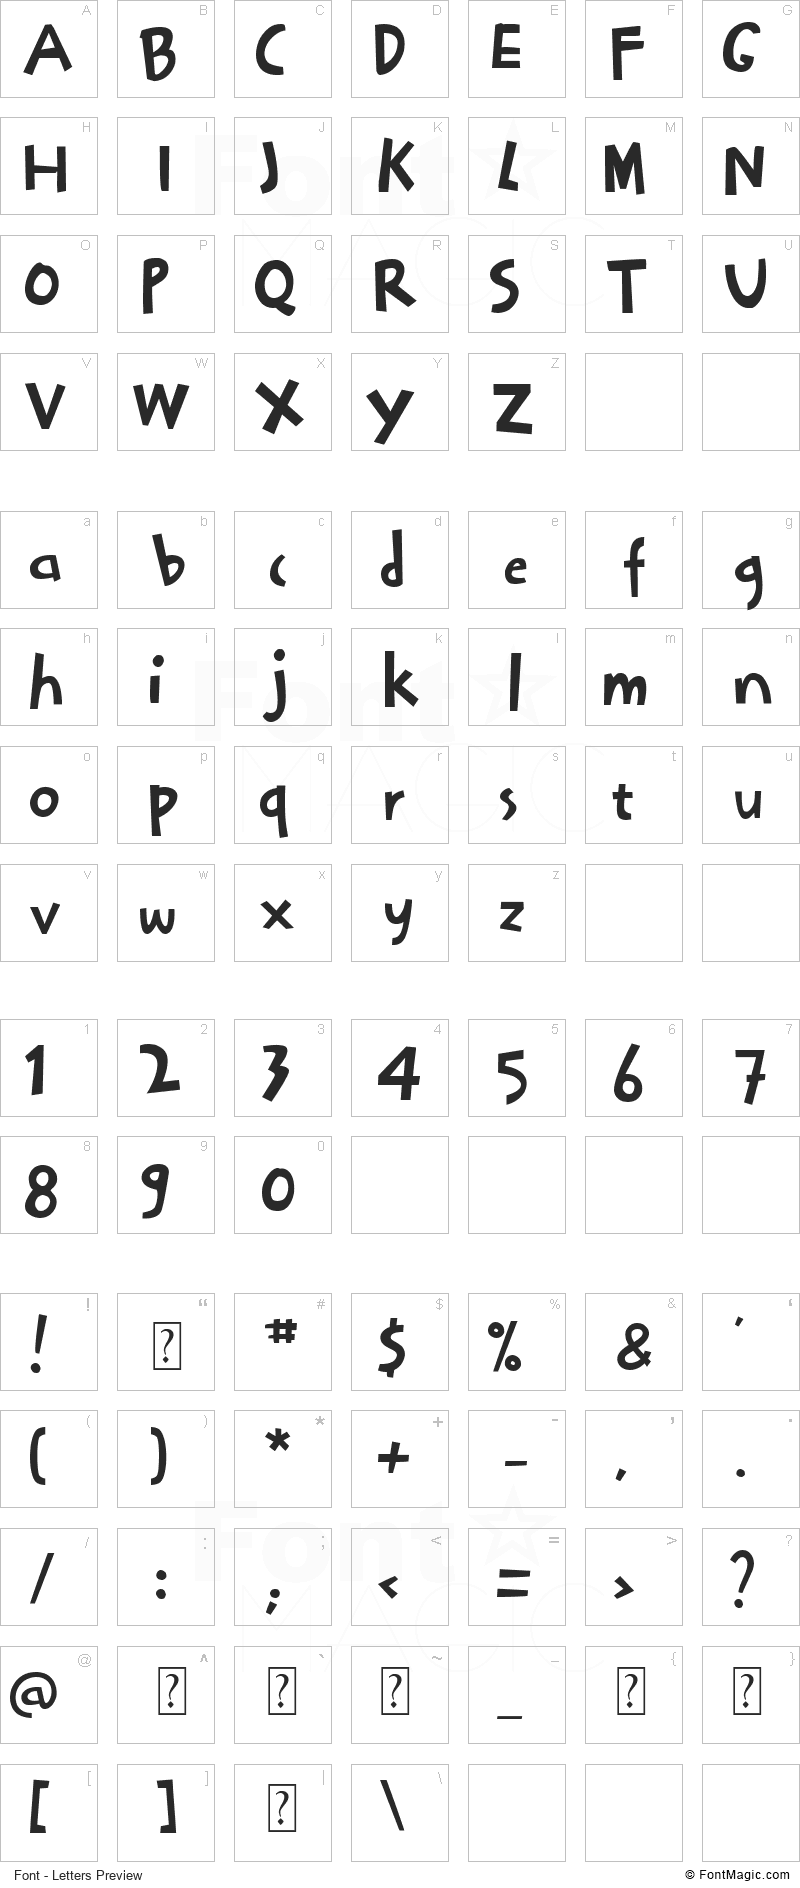 Bocah Font - All Latters Preview Chart